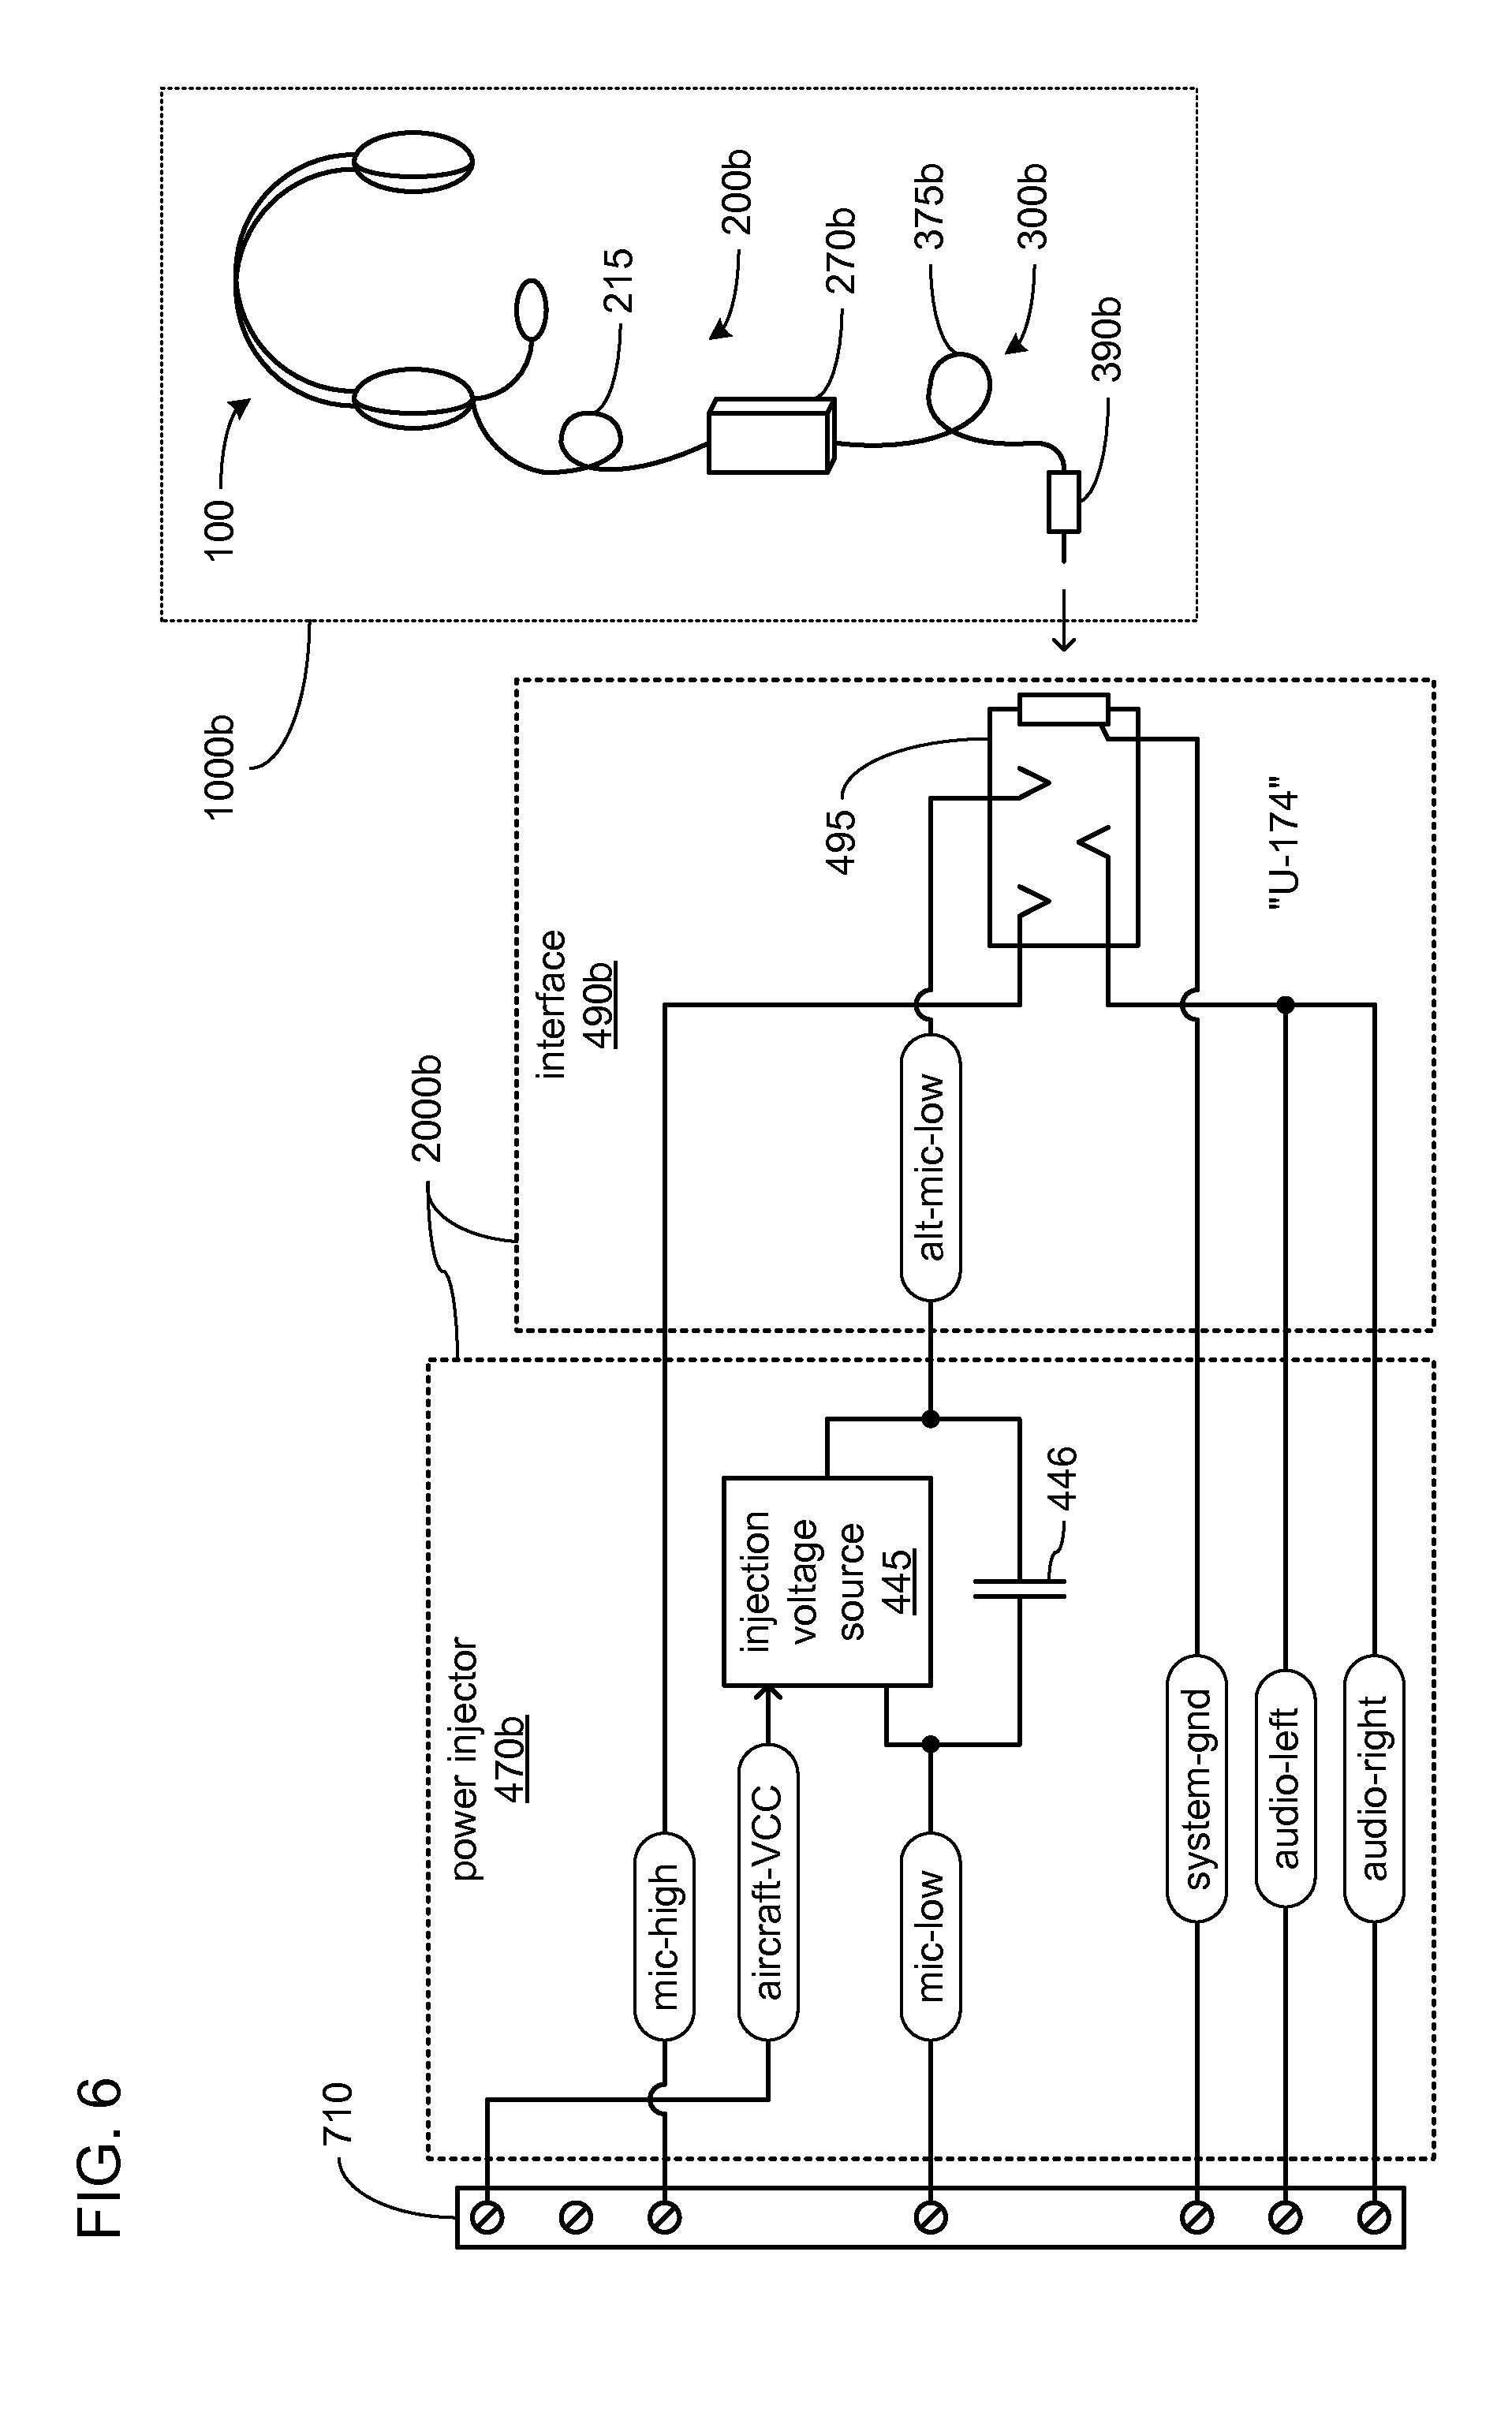 Headphone Jack with Mic Wiring Diagram Awesome Luxury Headphone Jack Wiring Diagram Diagram Headphone Jack